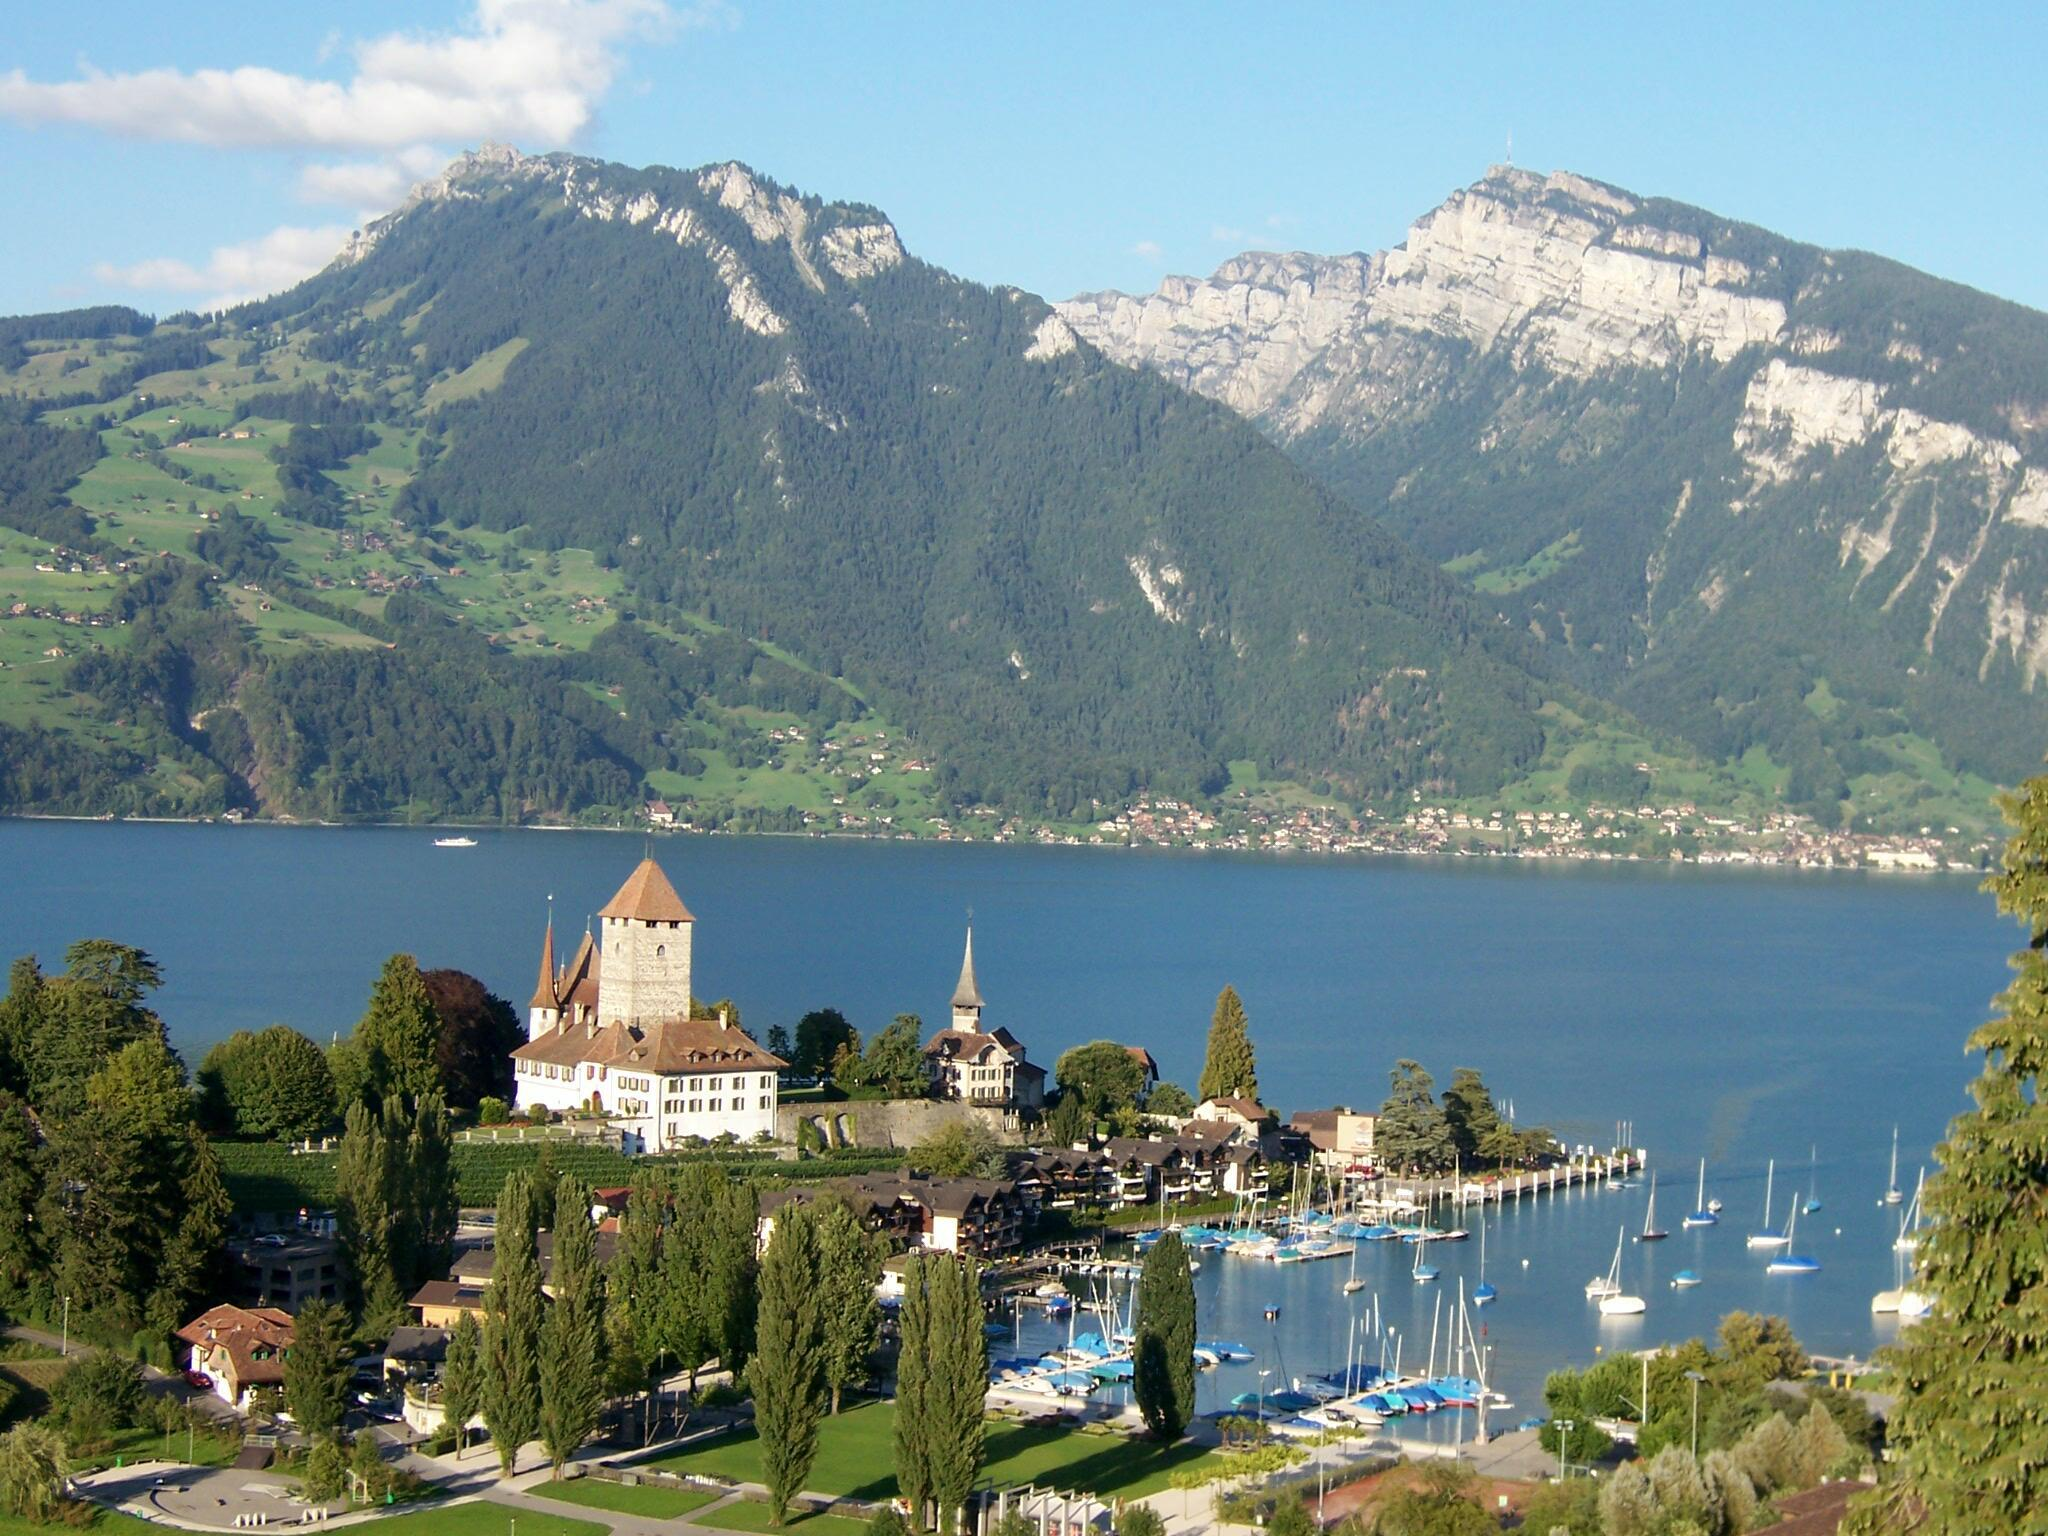 Spiez Switzerland  city pictures gallery : Spiez am Thunersee Wikipedia, the free encyclopedia